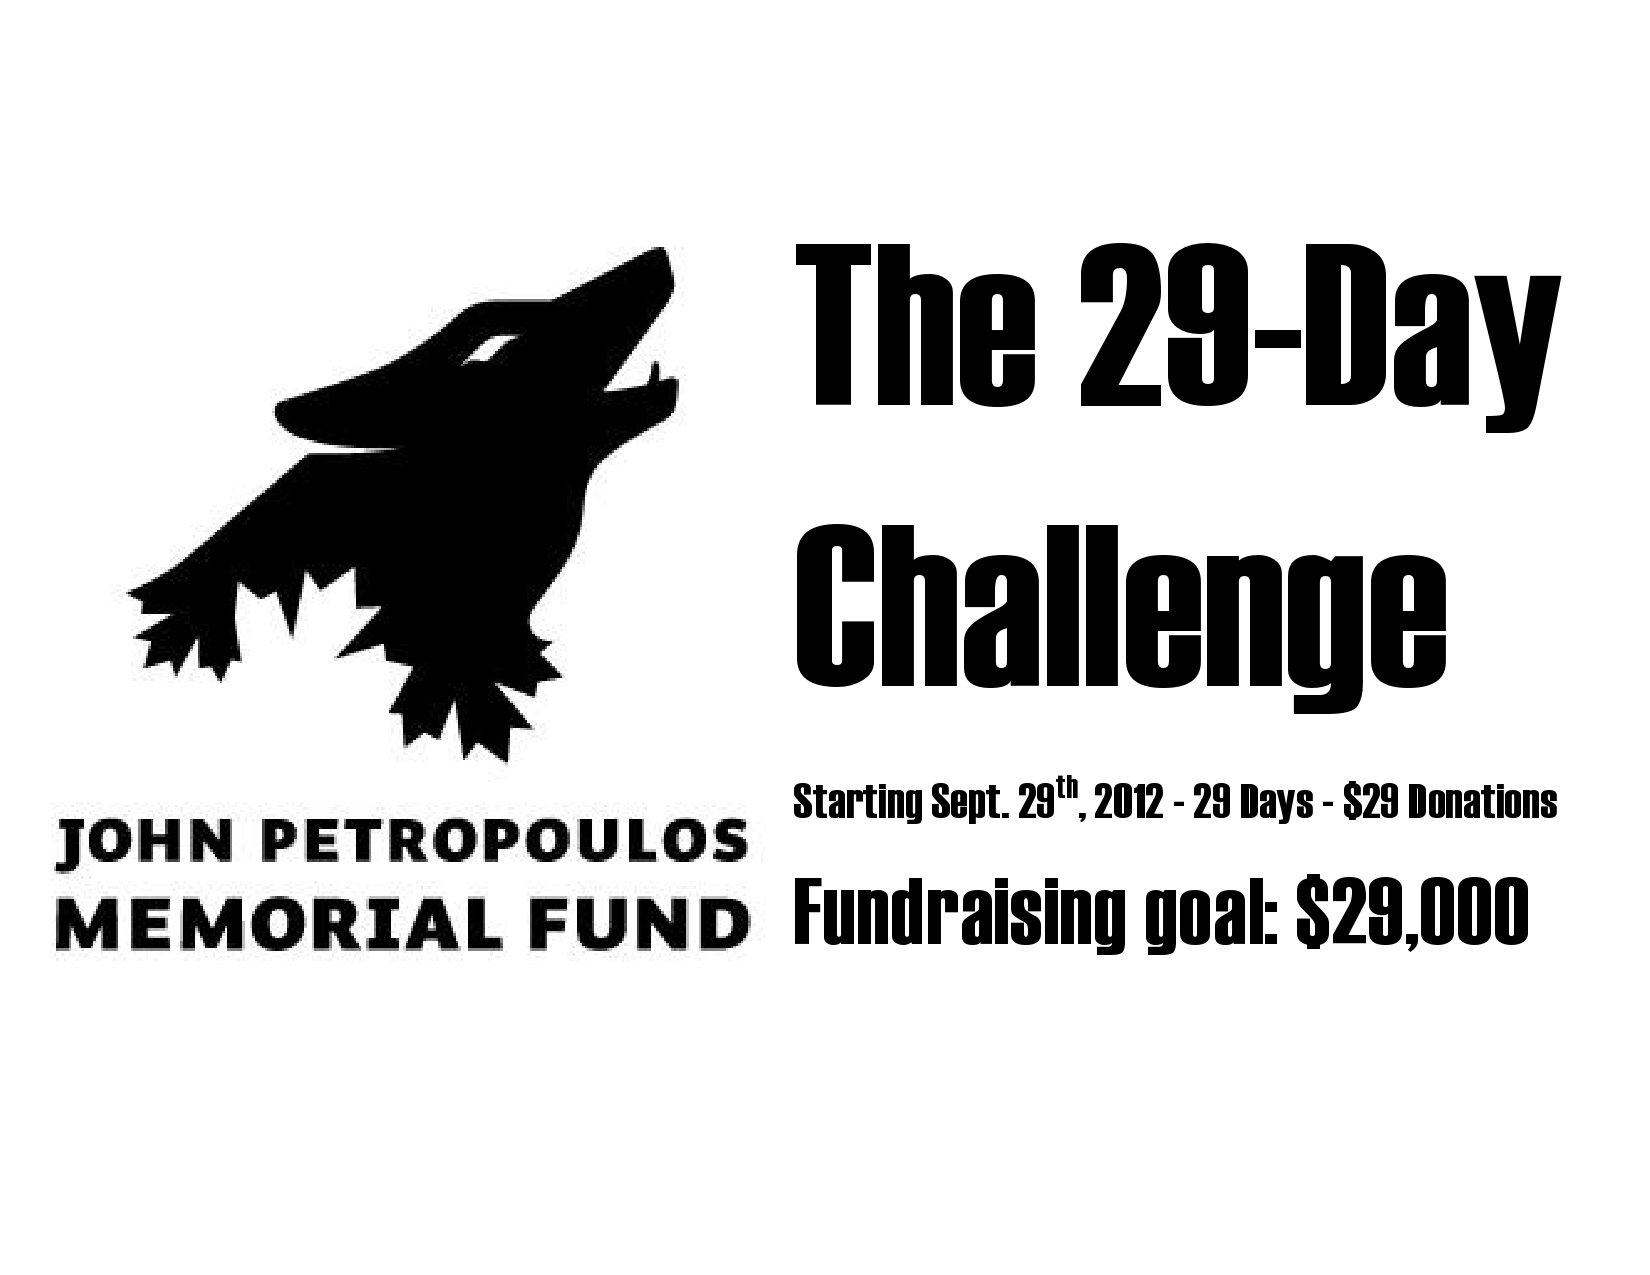 The 29-Day Challenge